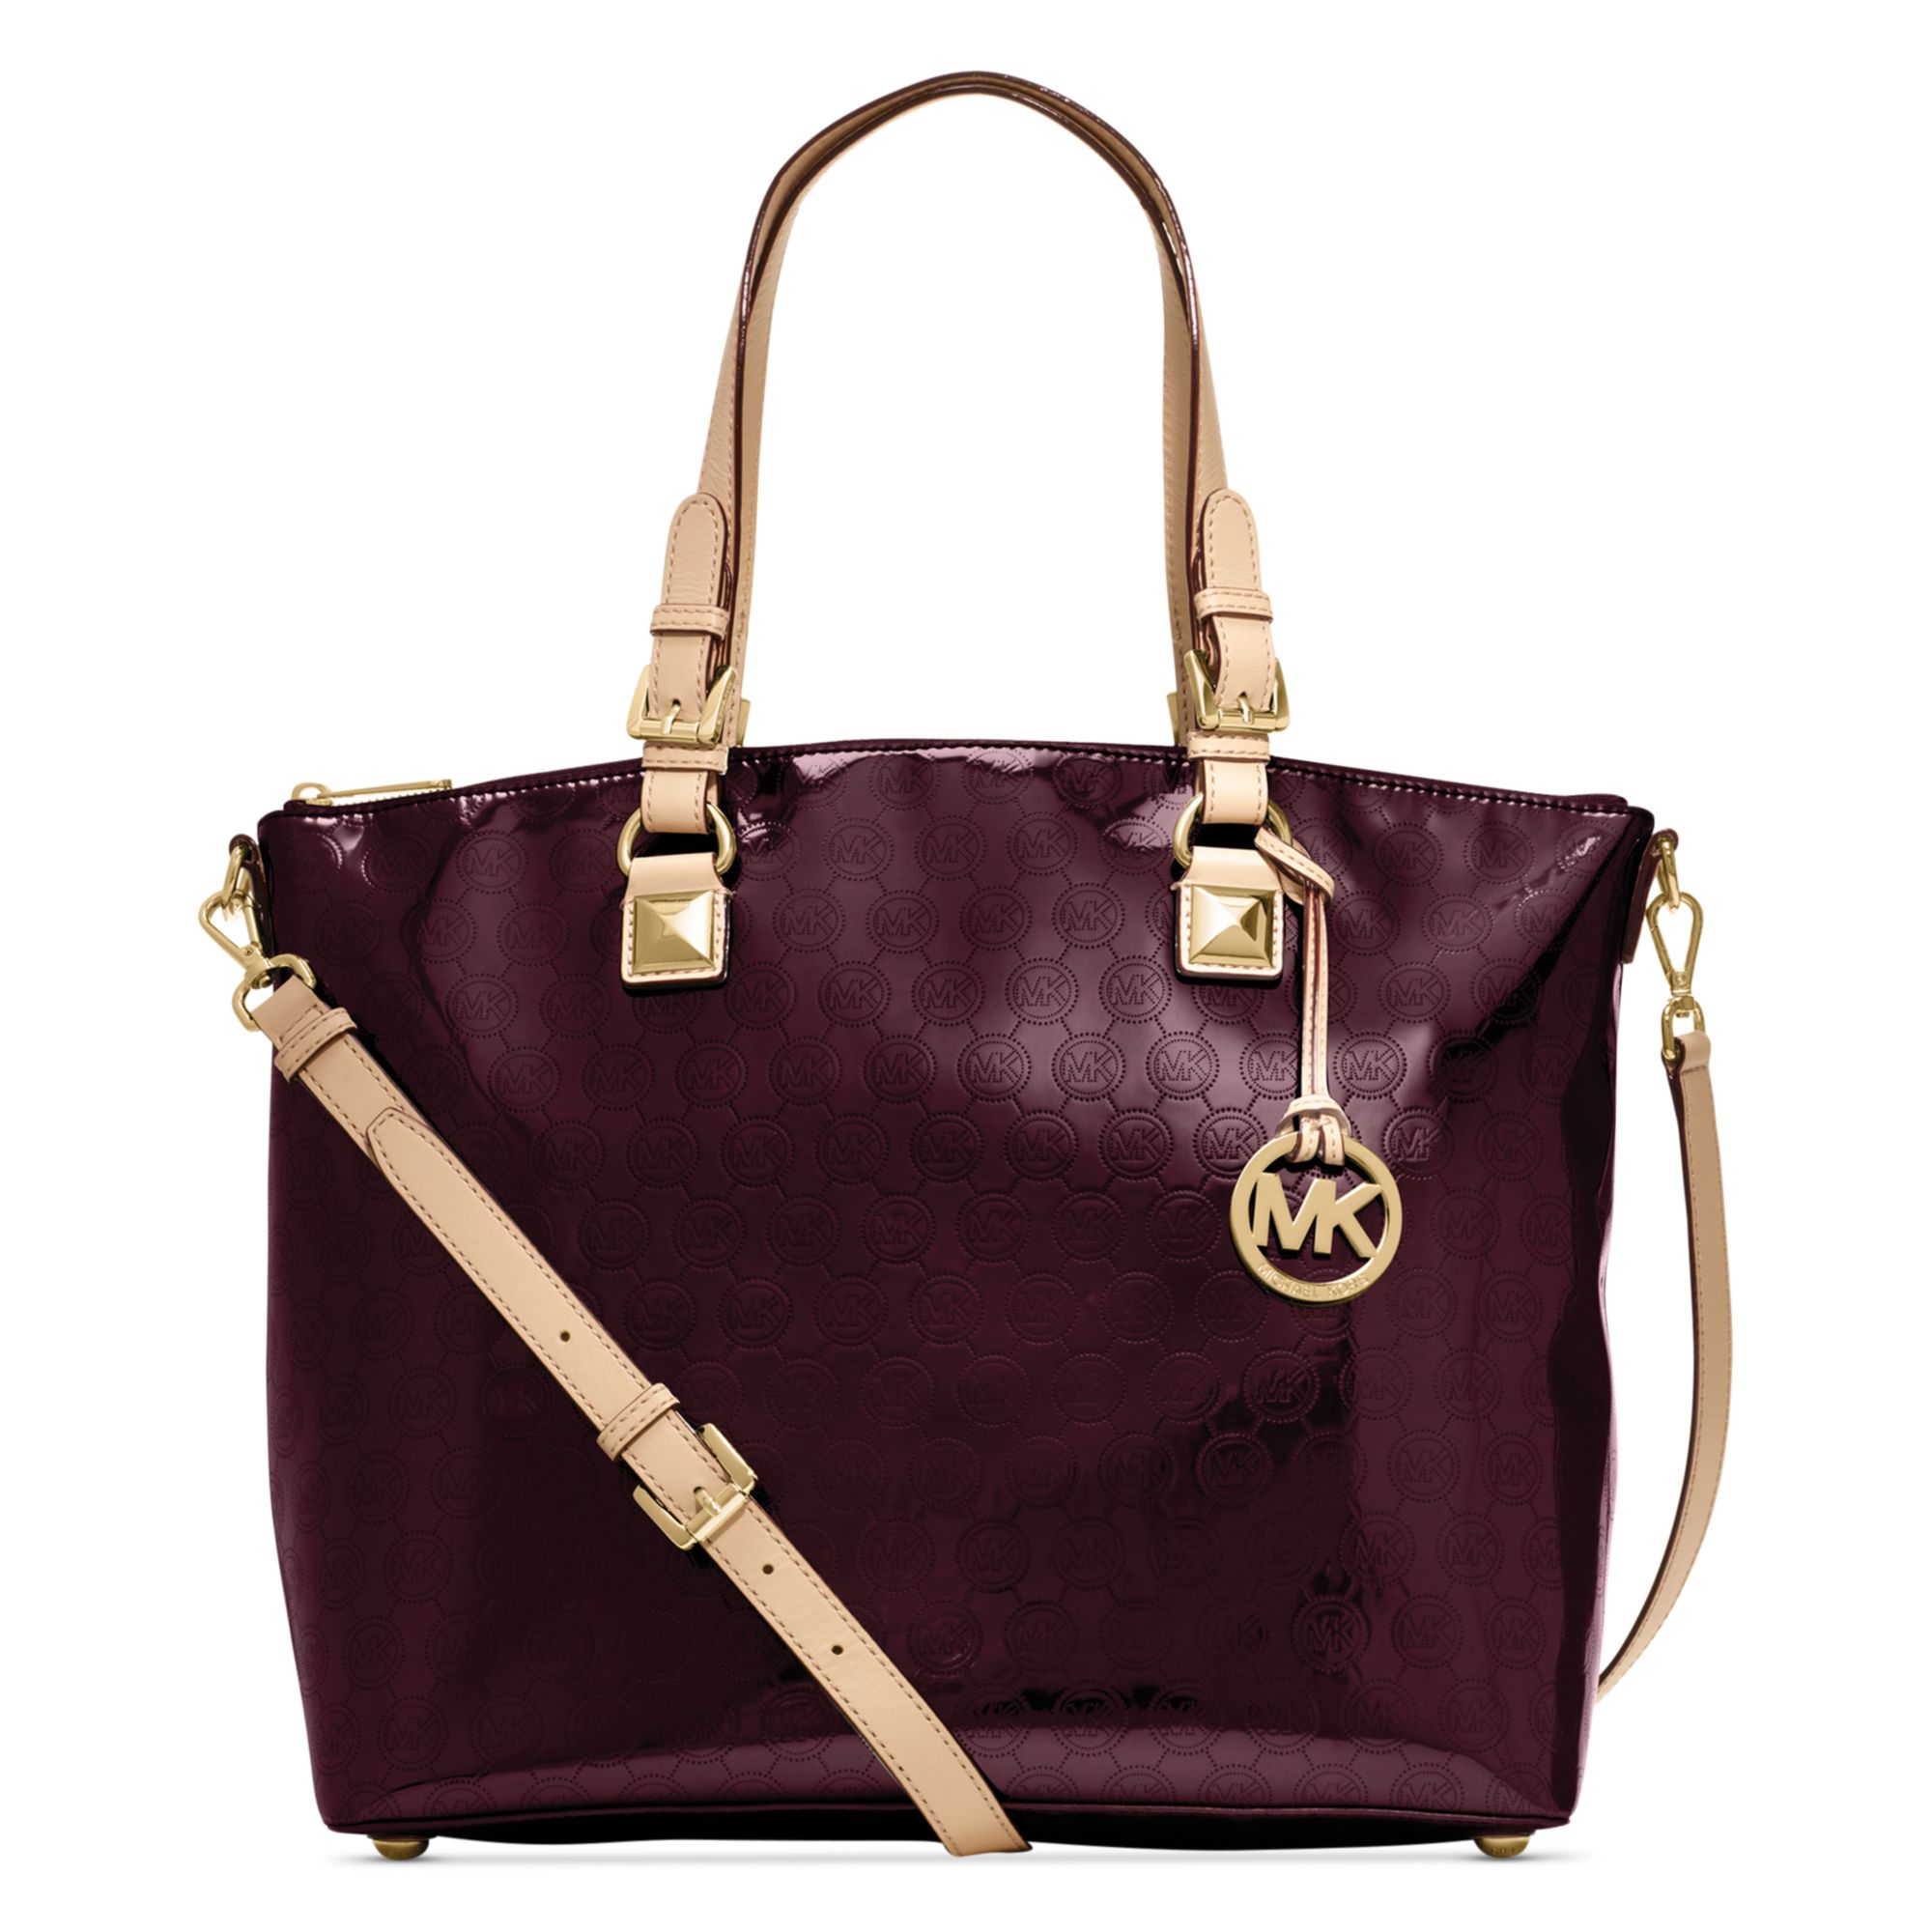 michael kors jet set item multi function satchel in purple lyst. Black Bedroom Furniture Sets. Home Design Ideas